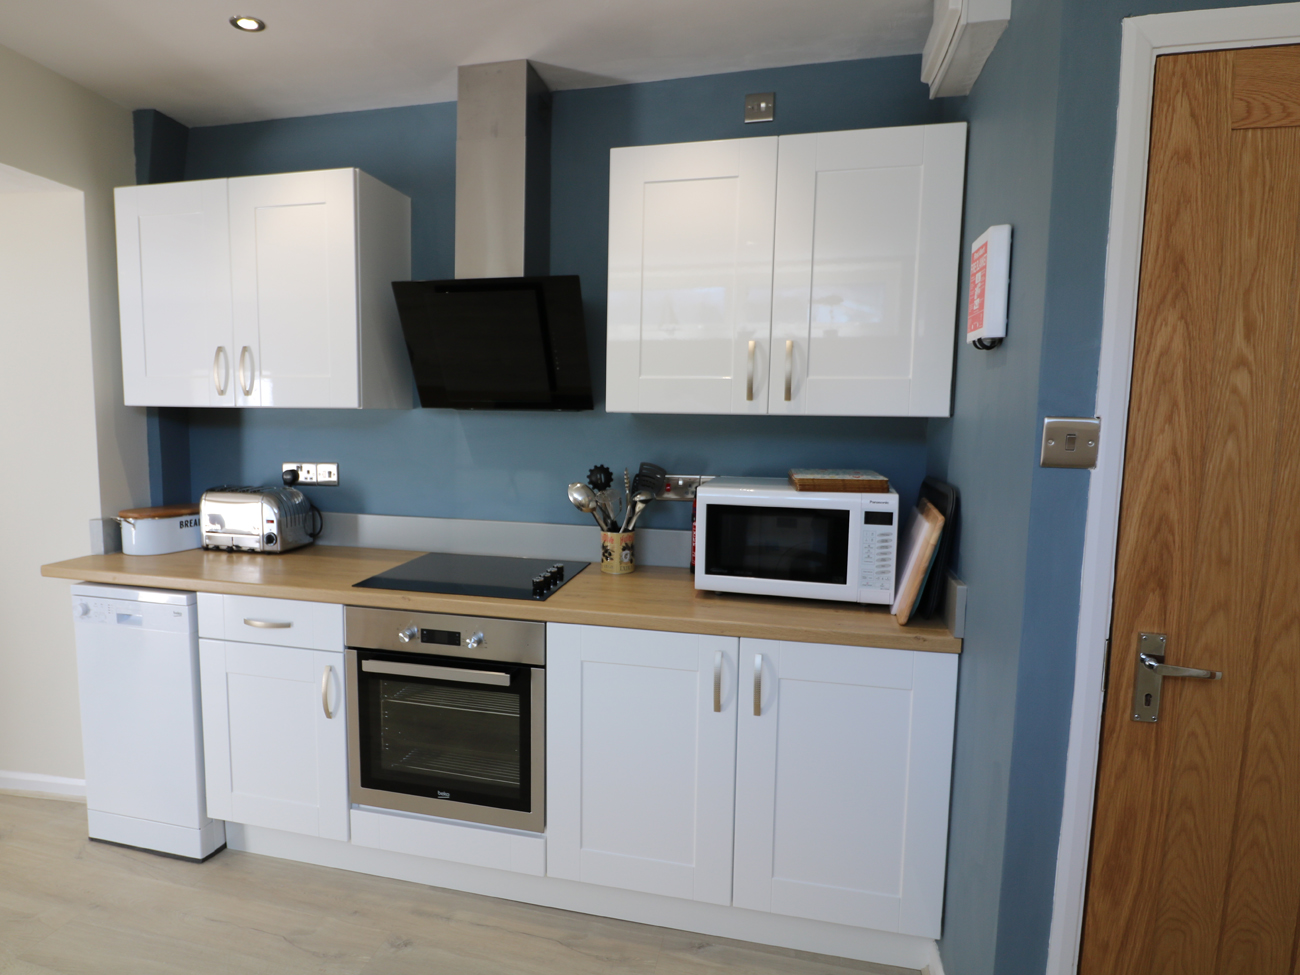 Chatsworth house rental cottages